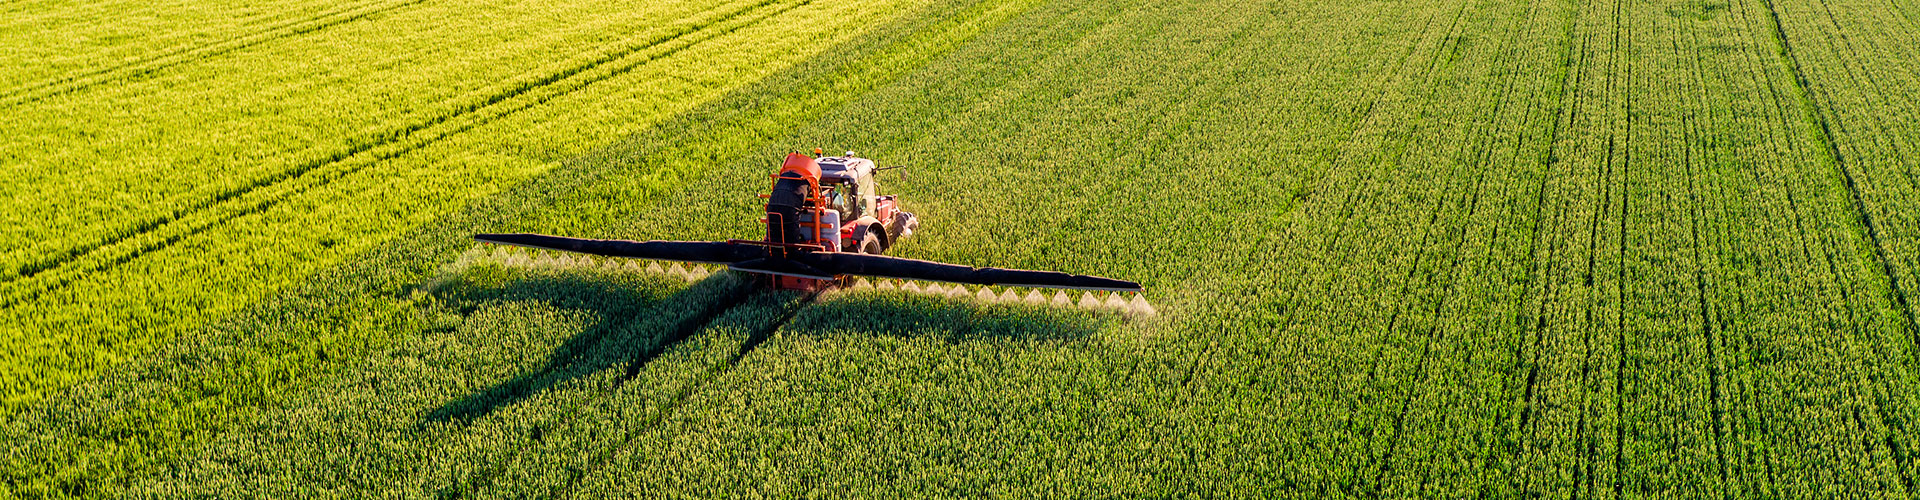 Agricultural sprayer driving through field